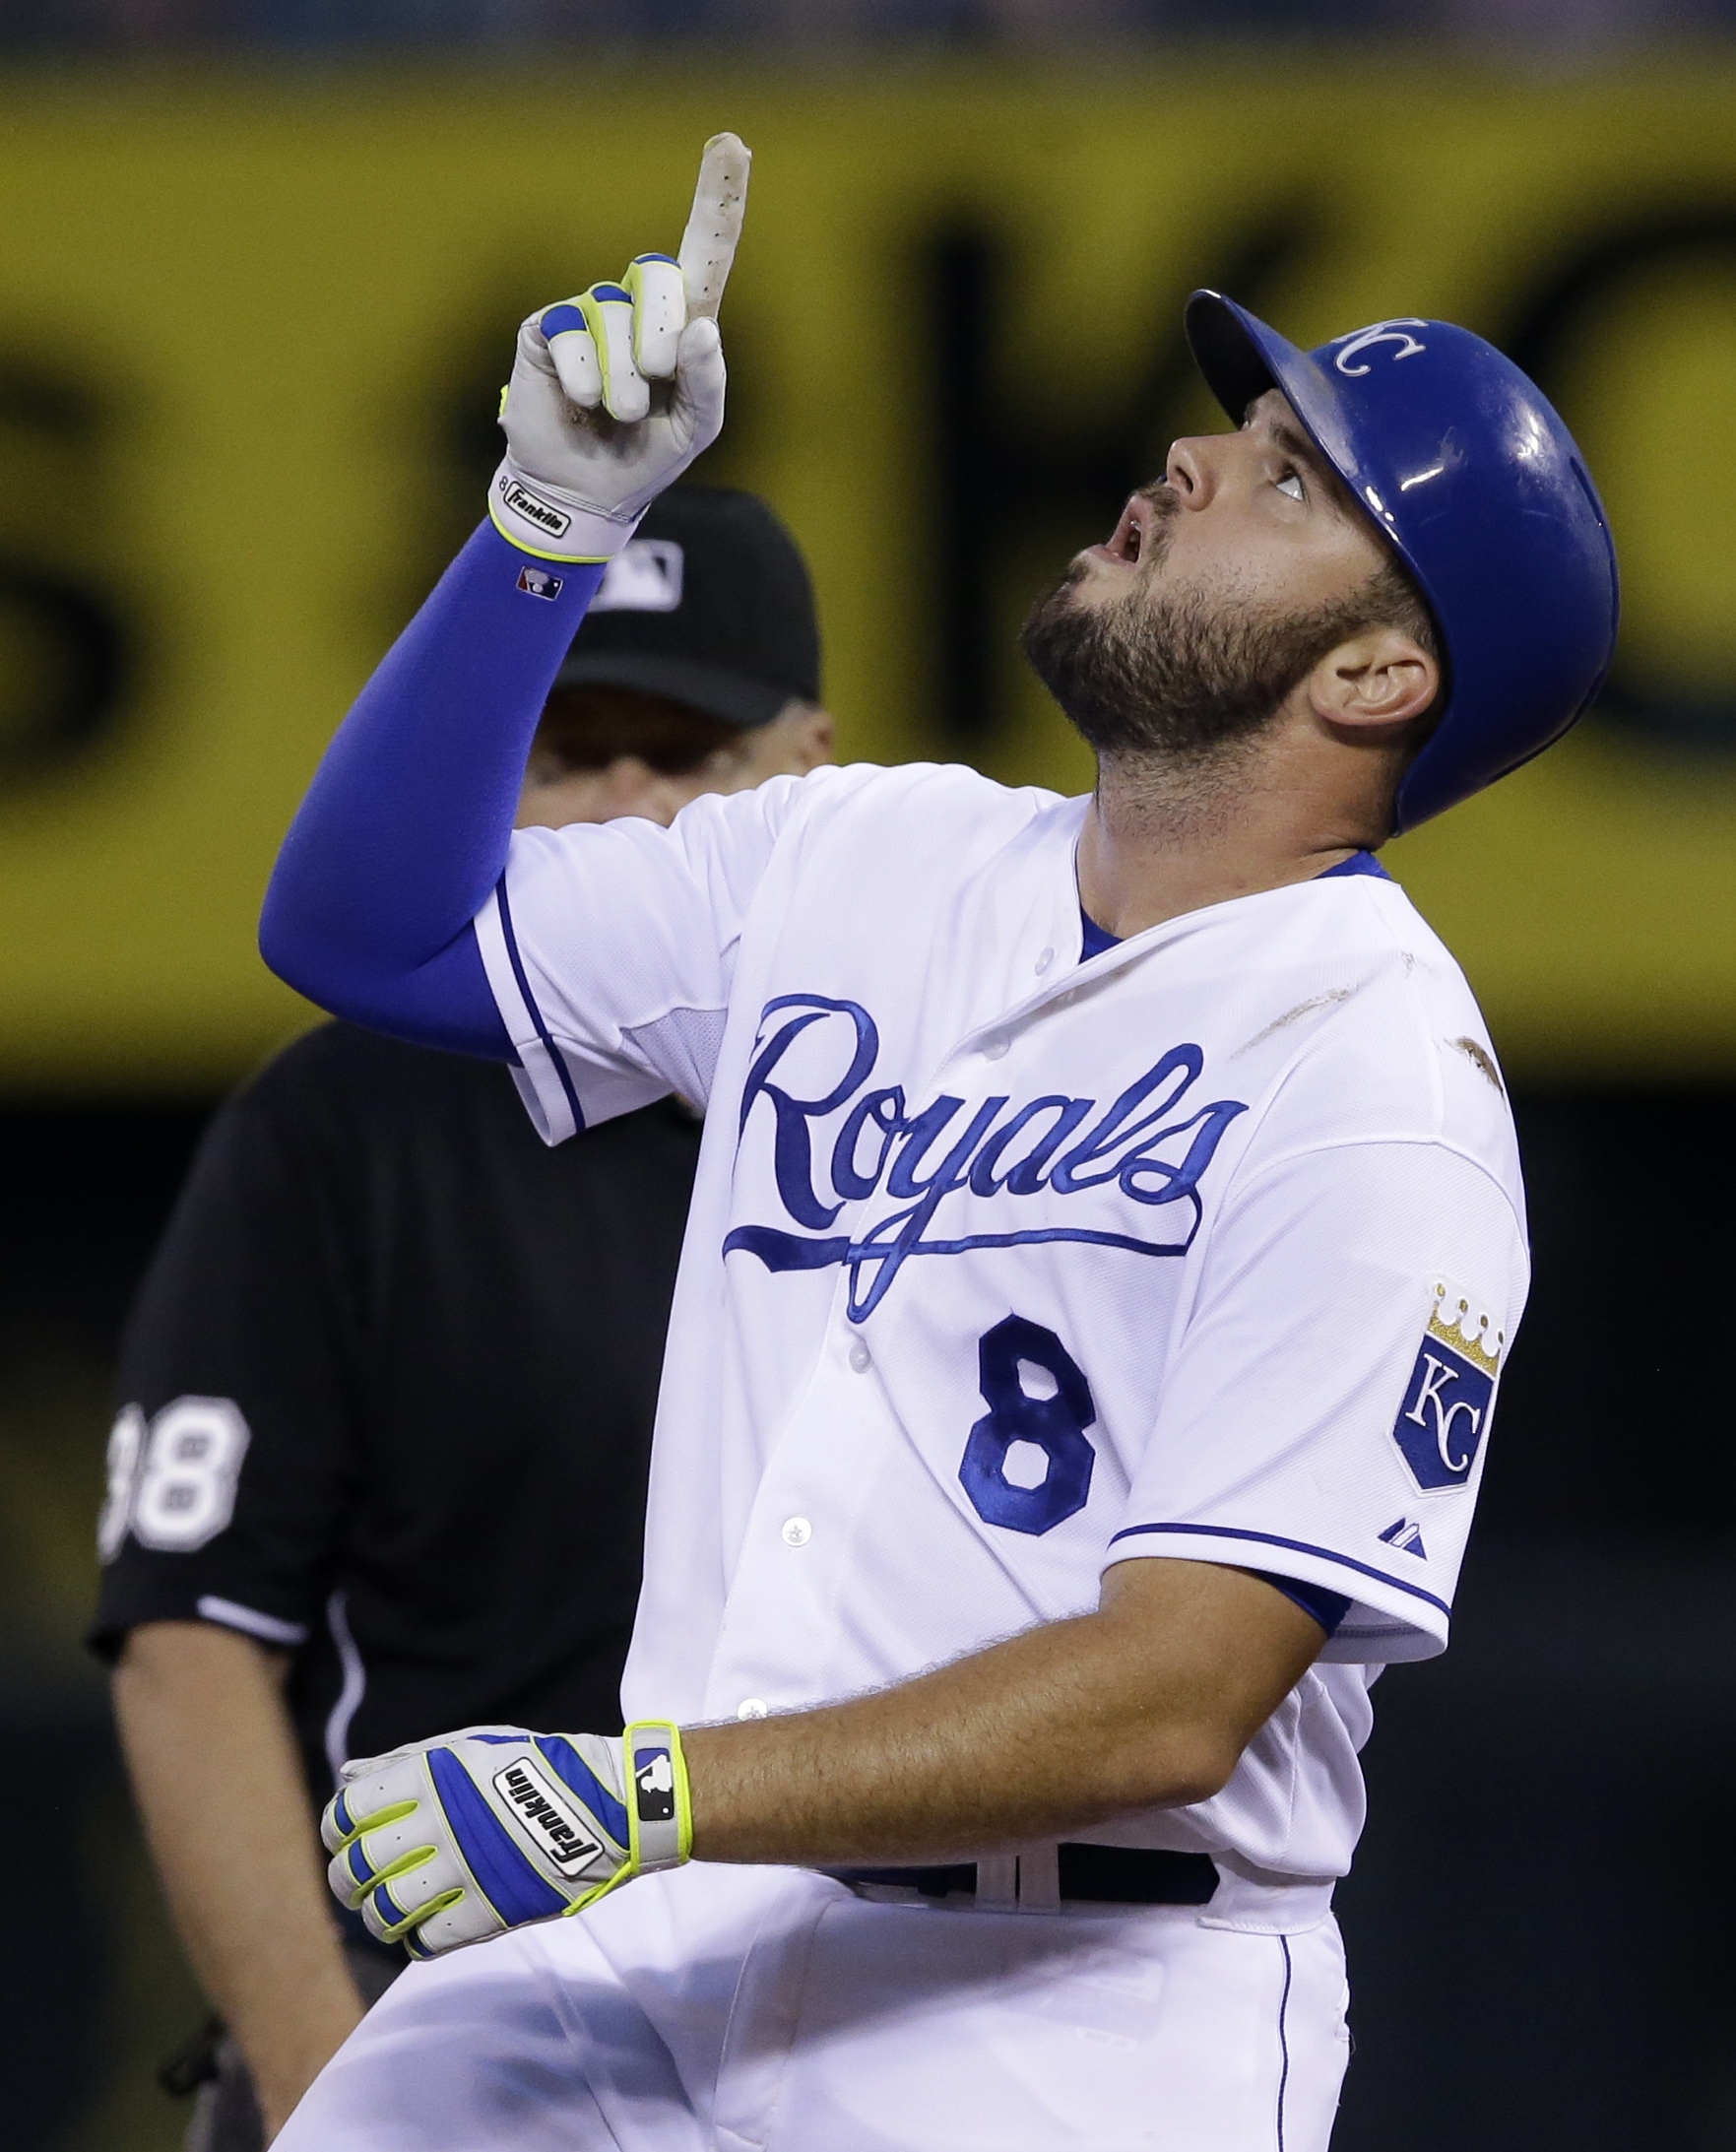 Kansas City Royals' Mike Moustakas gestures after hitting a double during the sixth inning of a baseball game against the Los Angeles Angels at Kauffman Stadium in Kansas City, Mo., Saturday, Aug. 15, 2015. (AP Photo/Orlin Wagner)